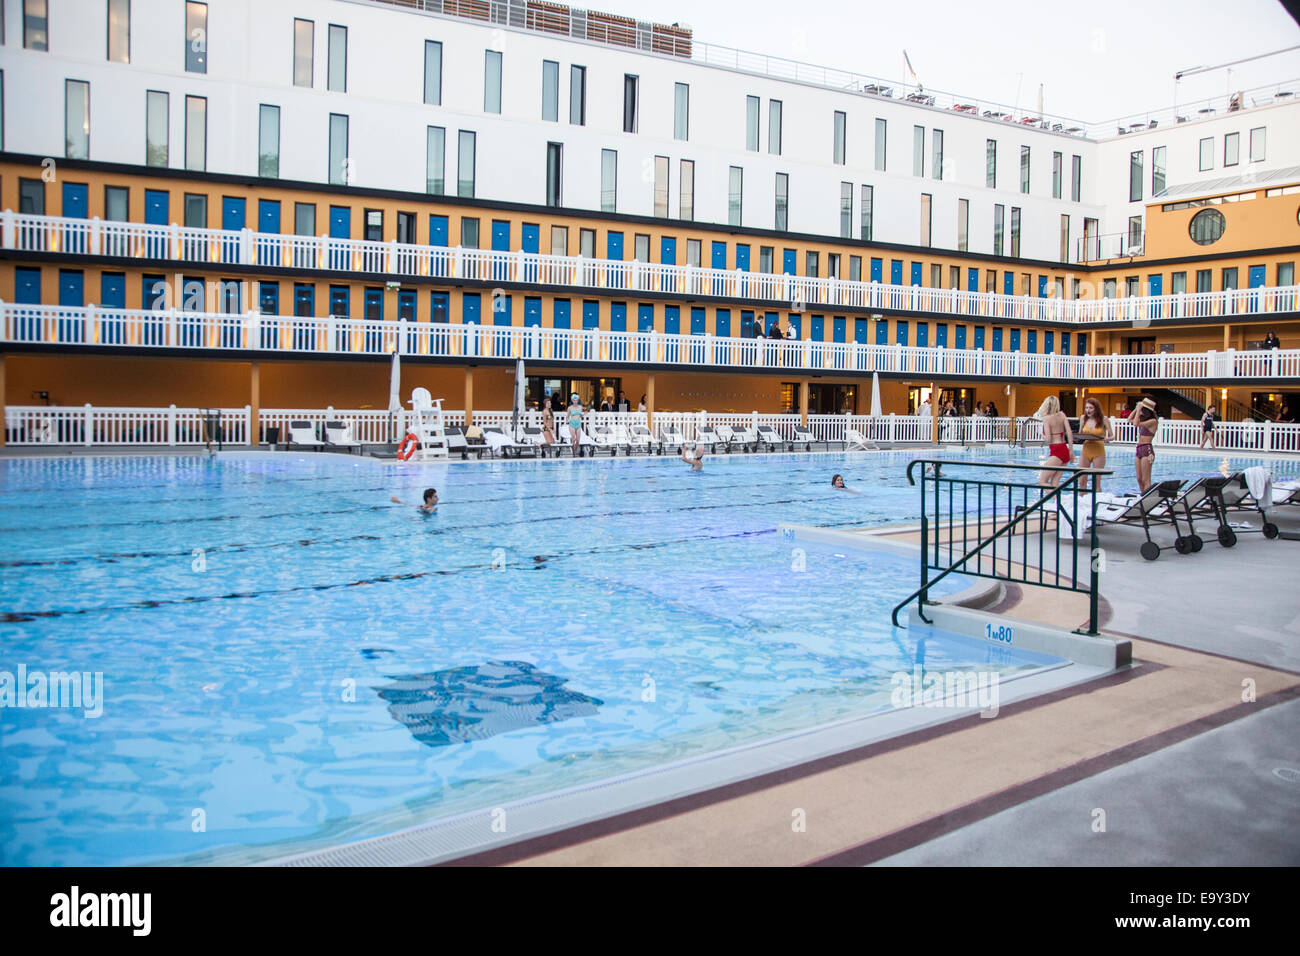 Hotel Molitor Piscine France Paris Hotel Molitor Swimming Pool Stock Photo 74968823